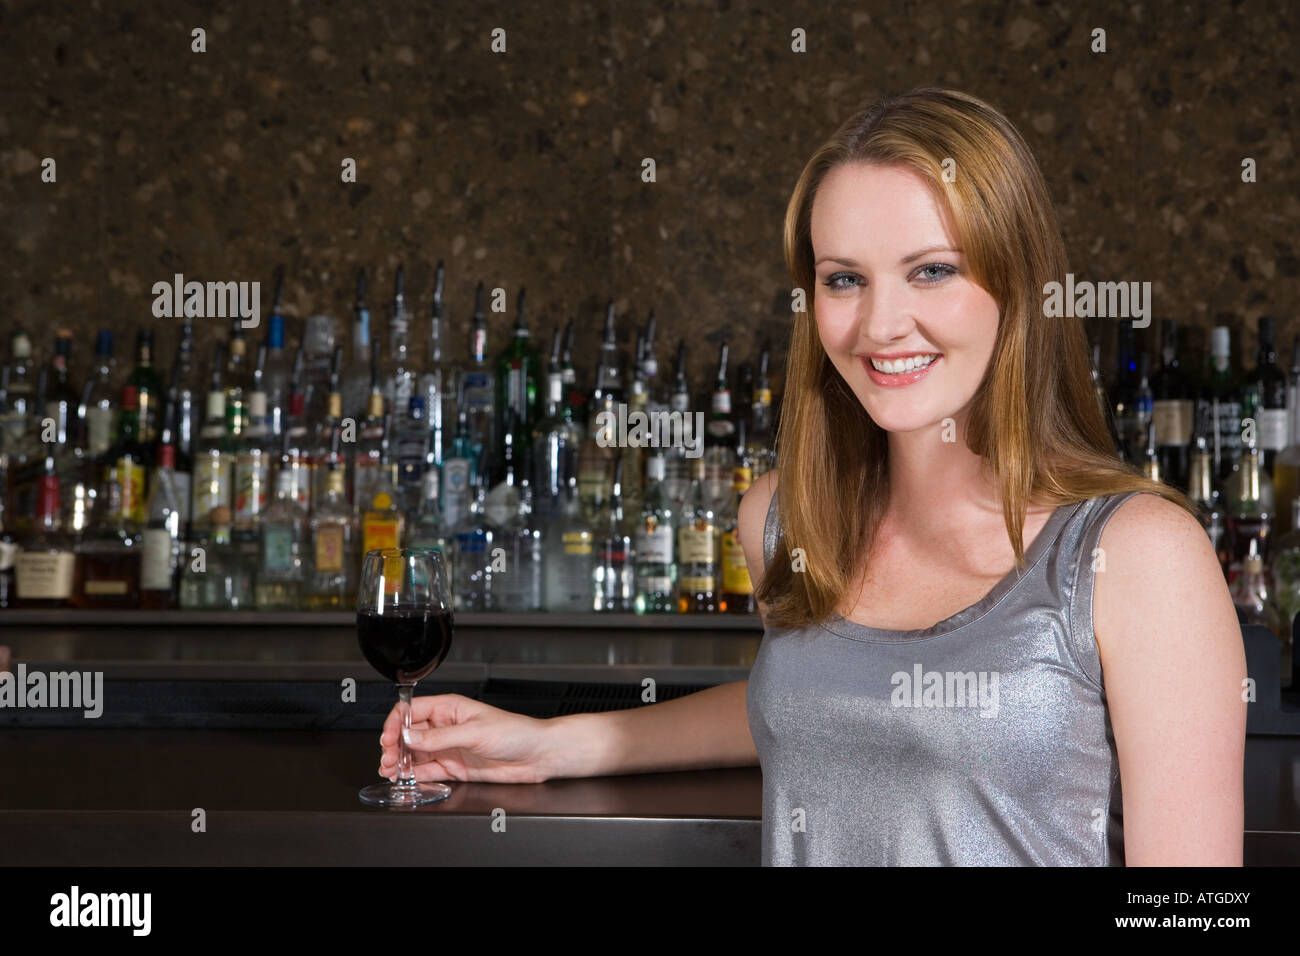 Smiling woman drinking wine in a bar Stock Photo